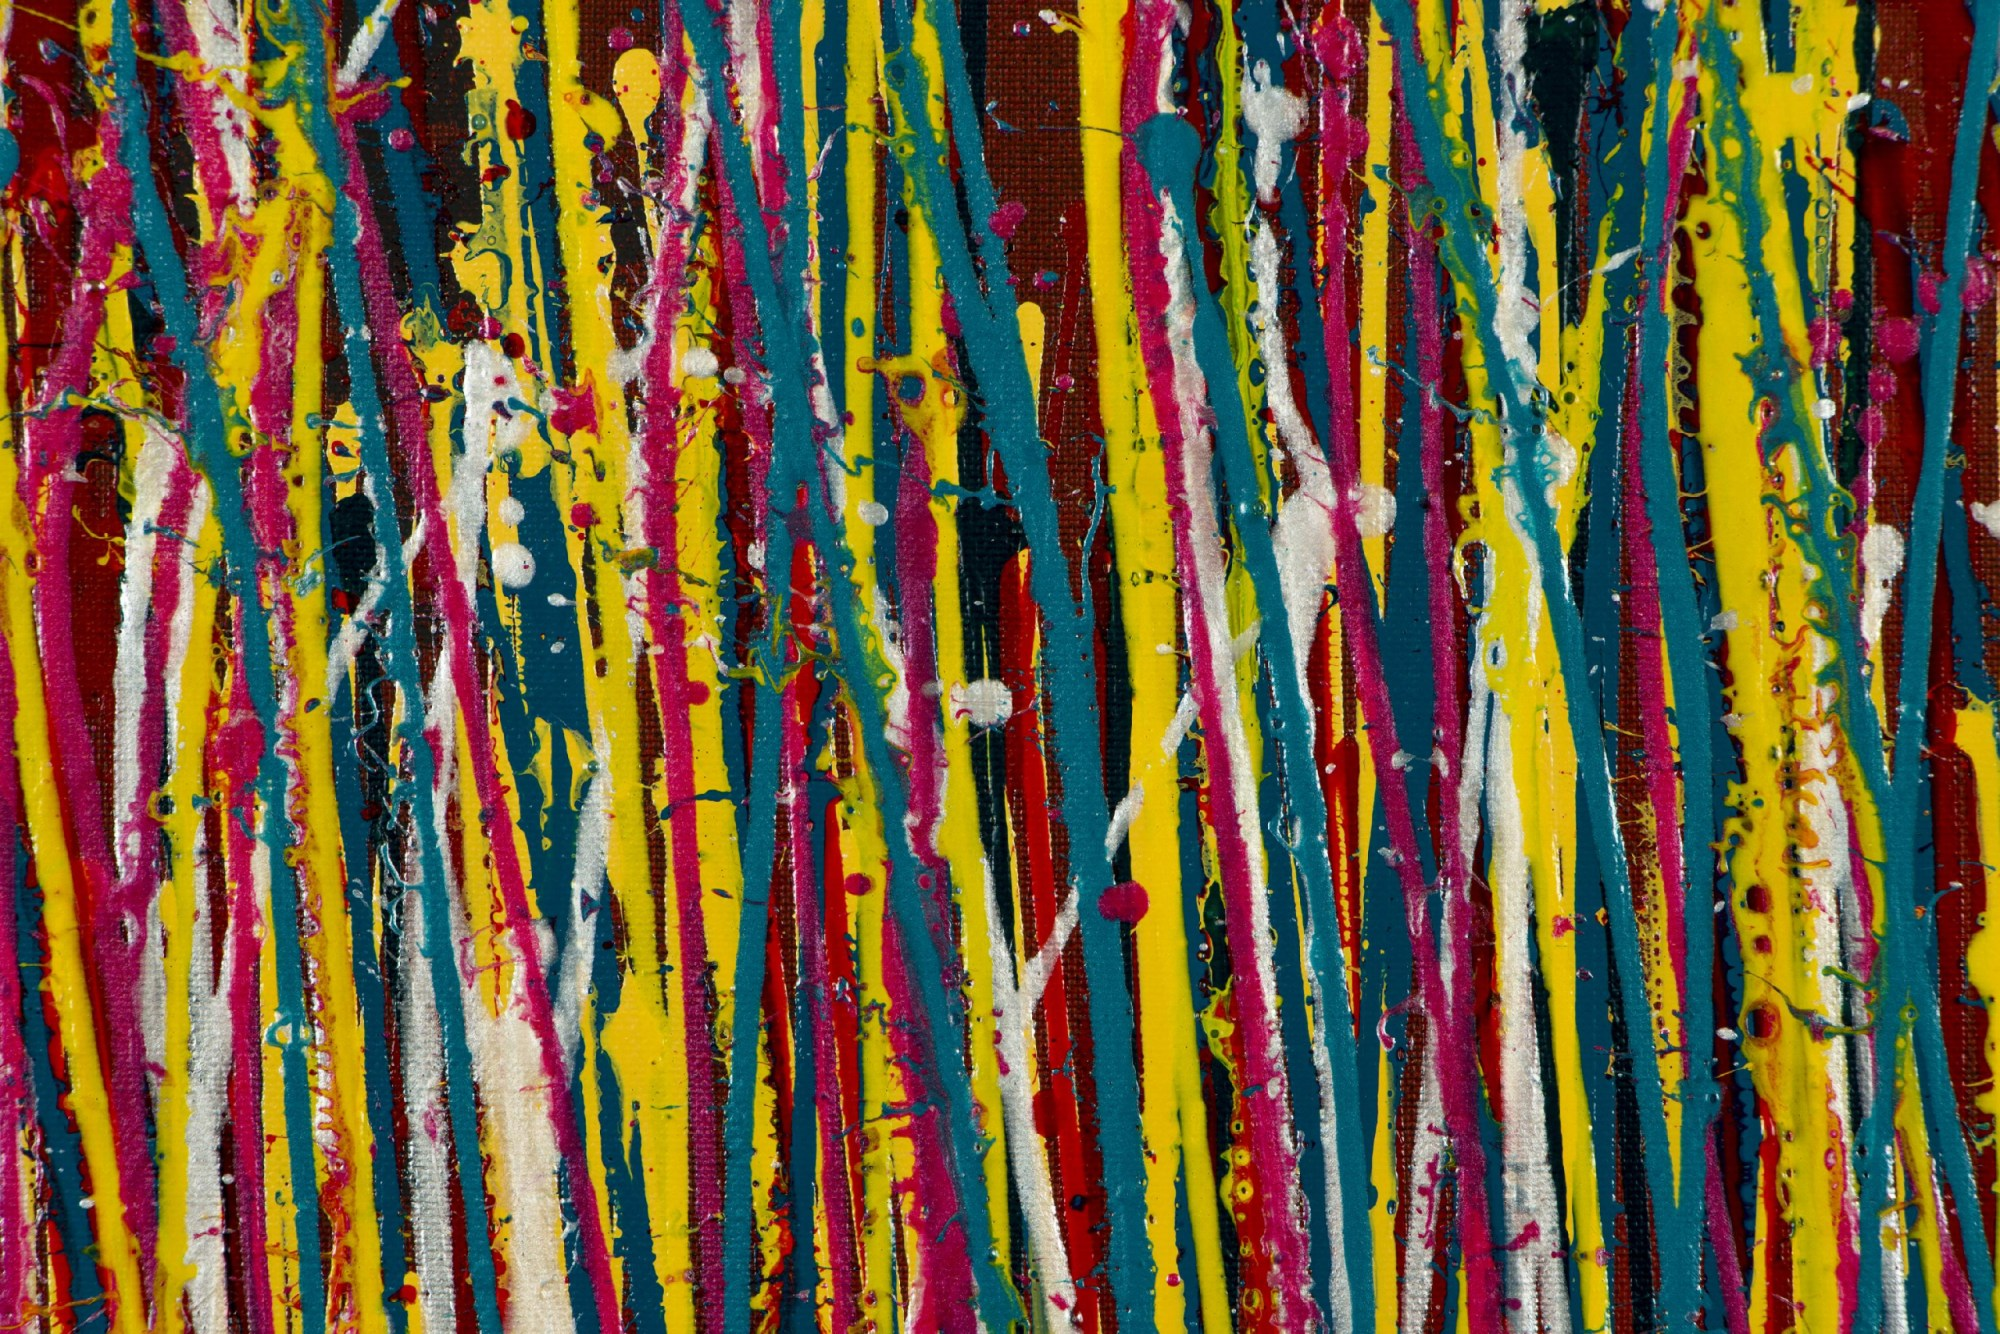 DETAIL / Natures Imagery (Scattering Colors) 2 (2021) / Triptych / Artist Nestor Toro